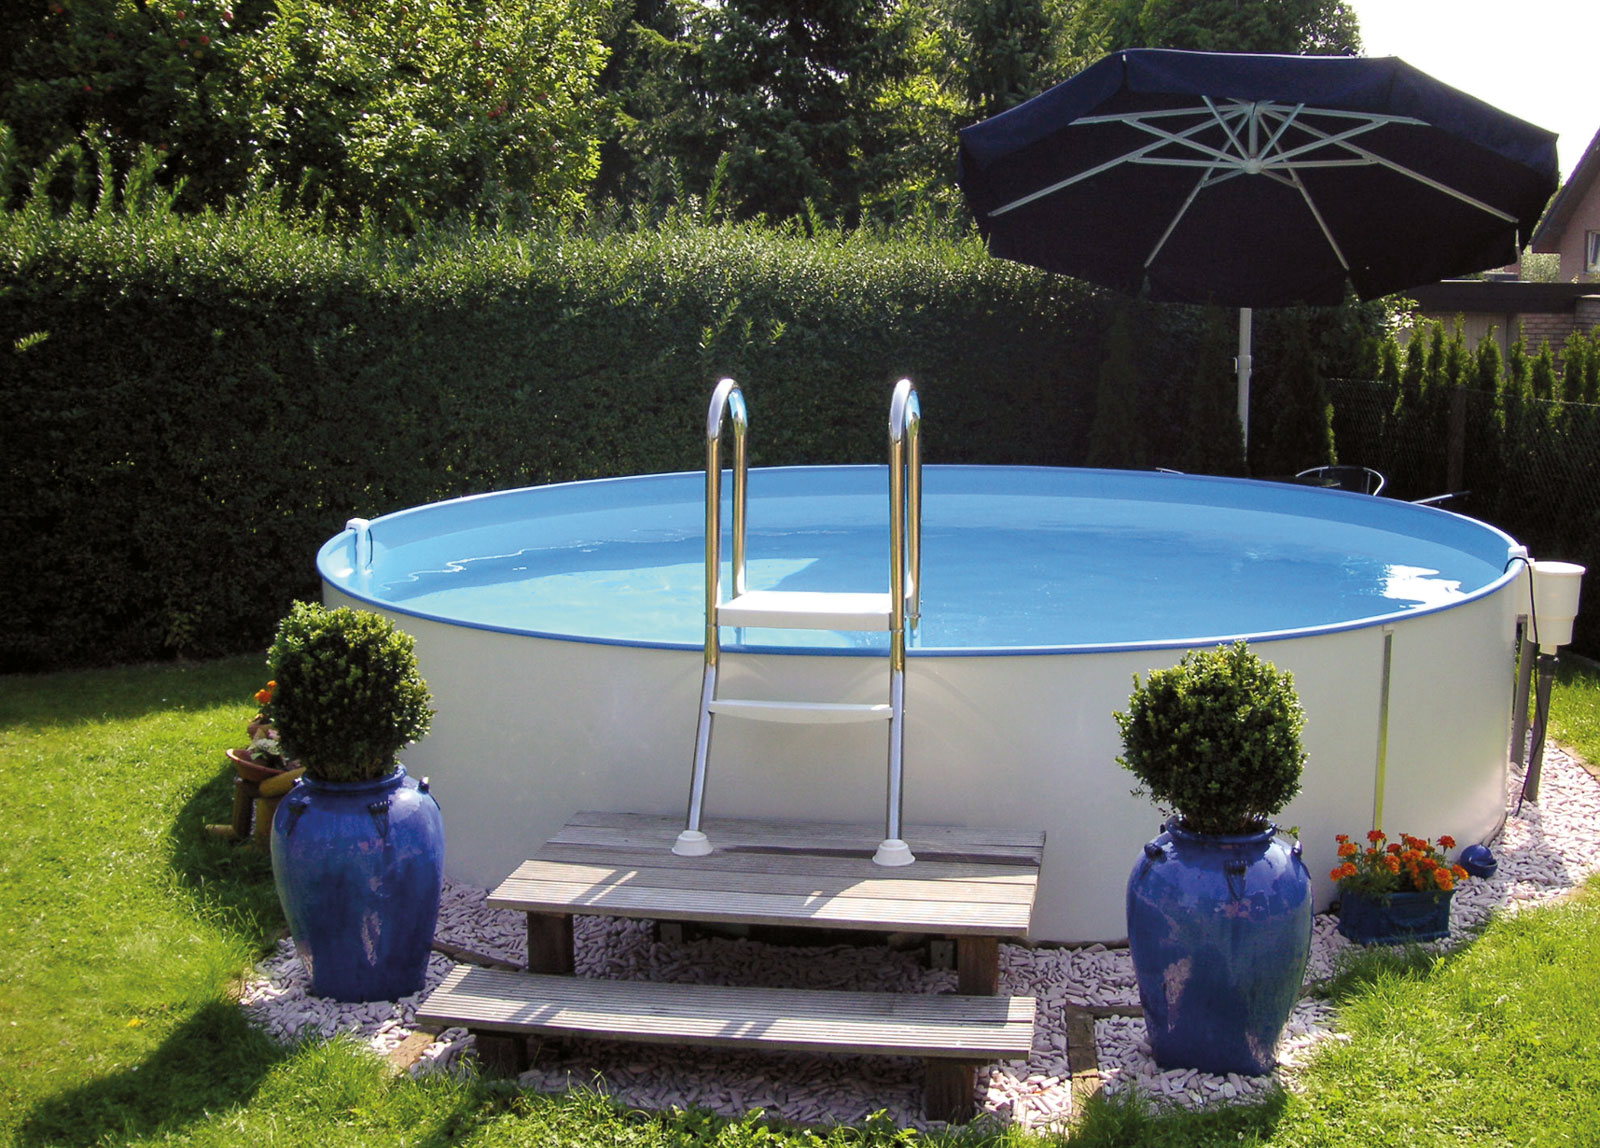 Stahlwandpool komplettset rund sunday pools onlineshop for Stahl pool rund